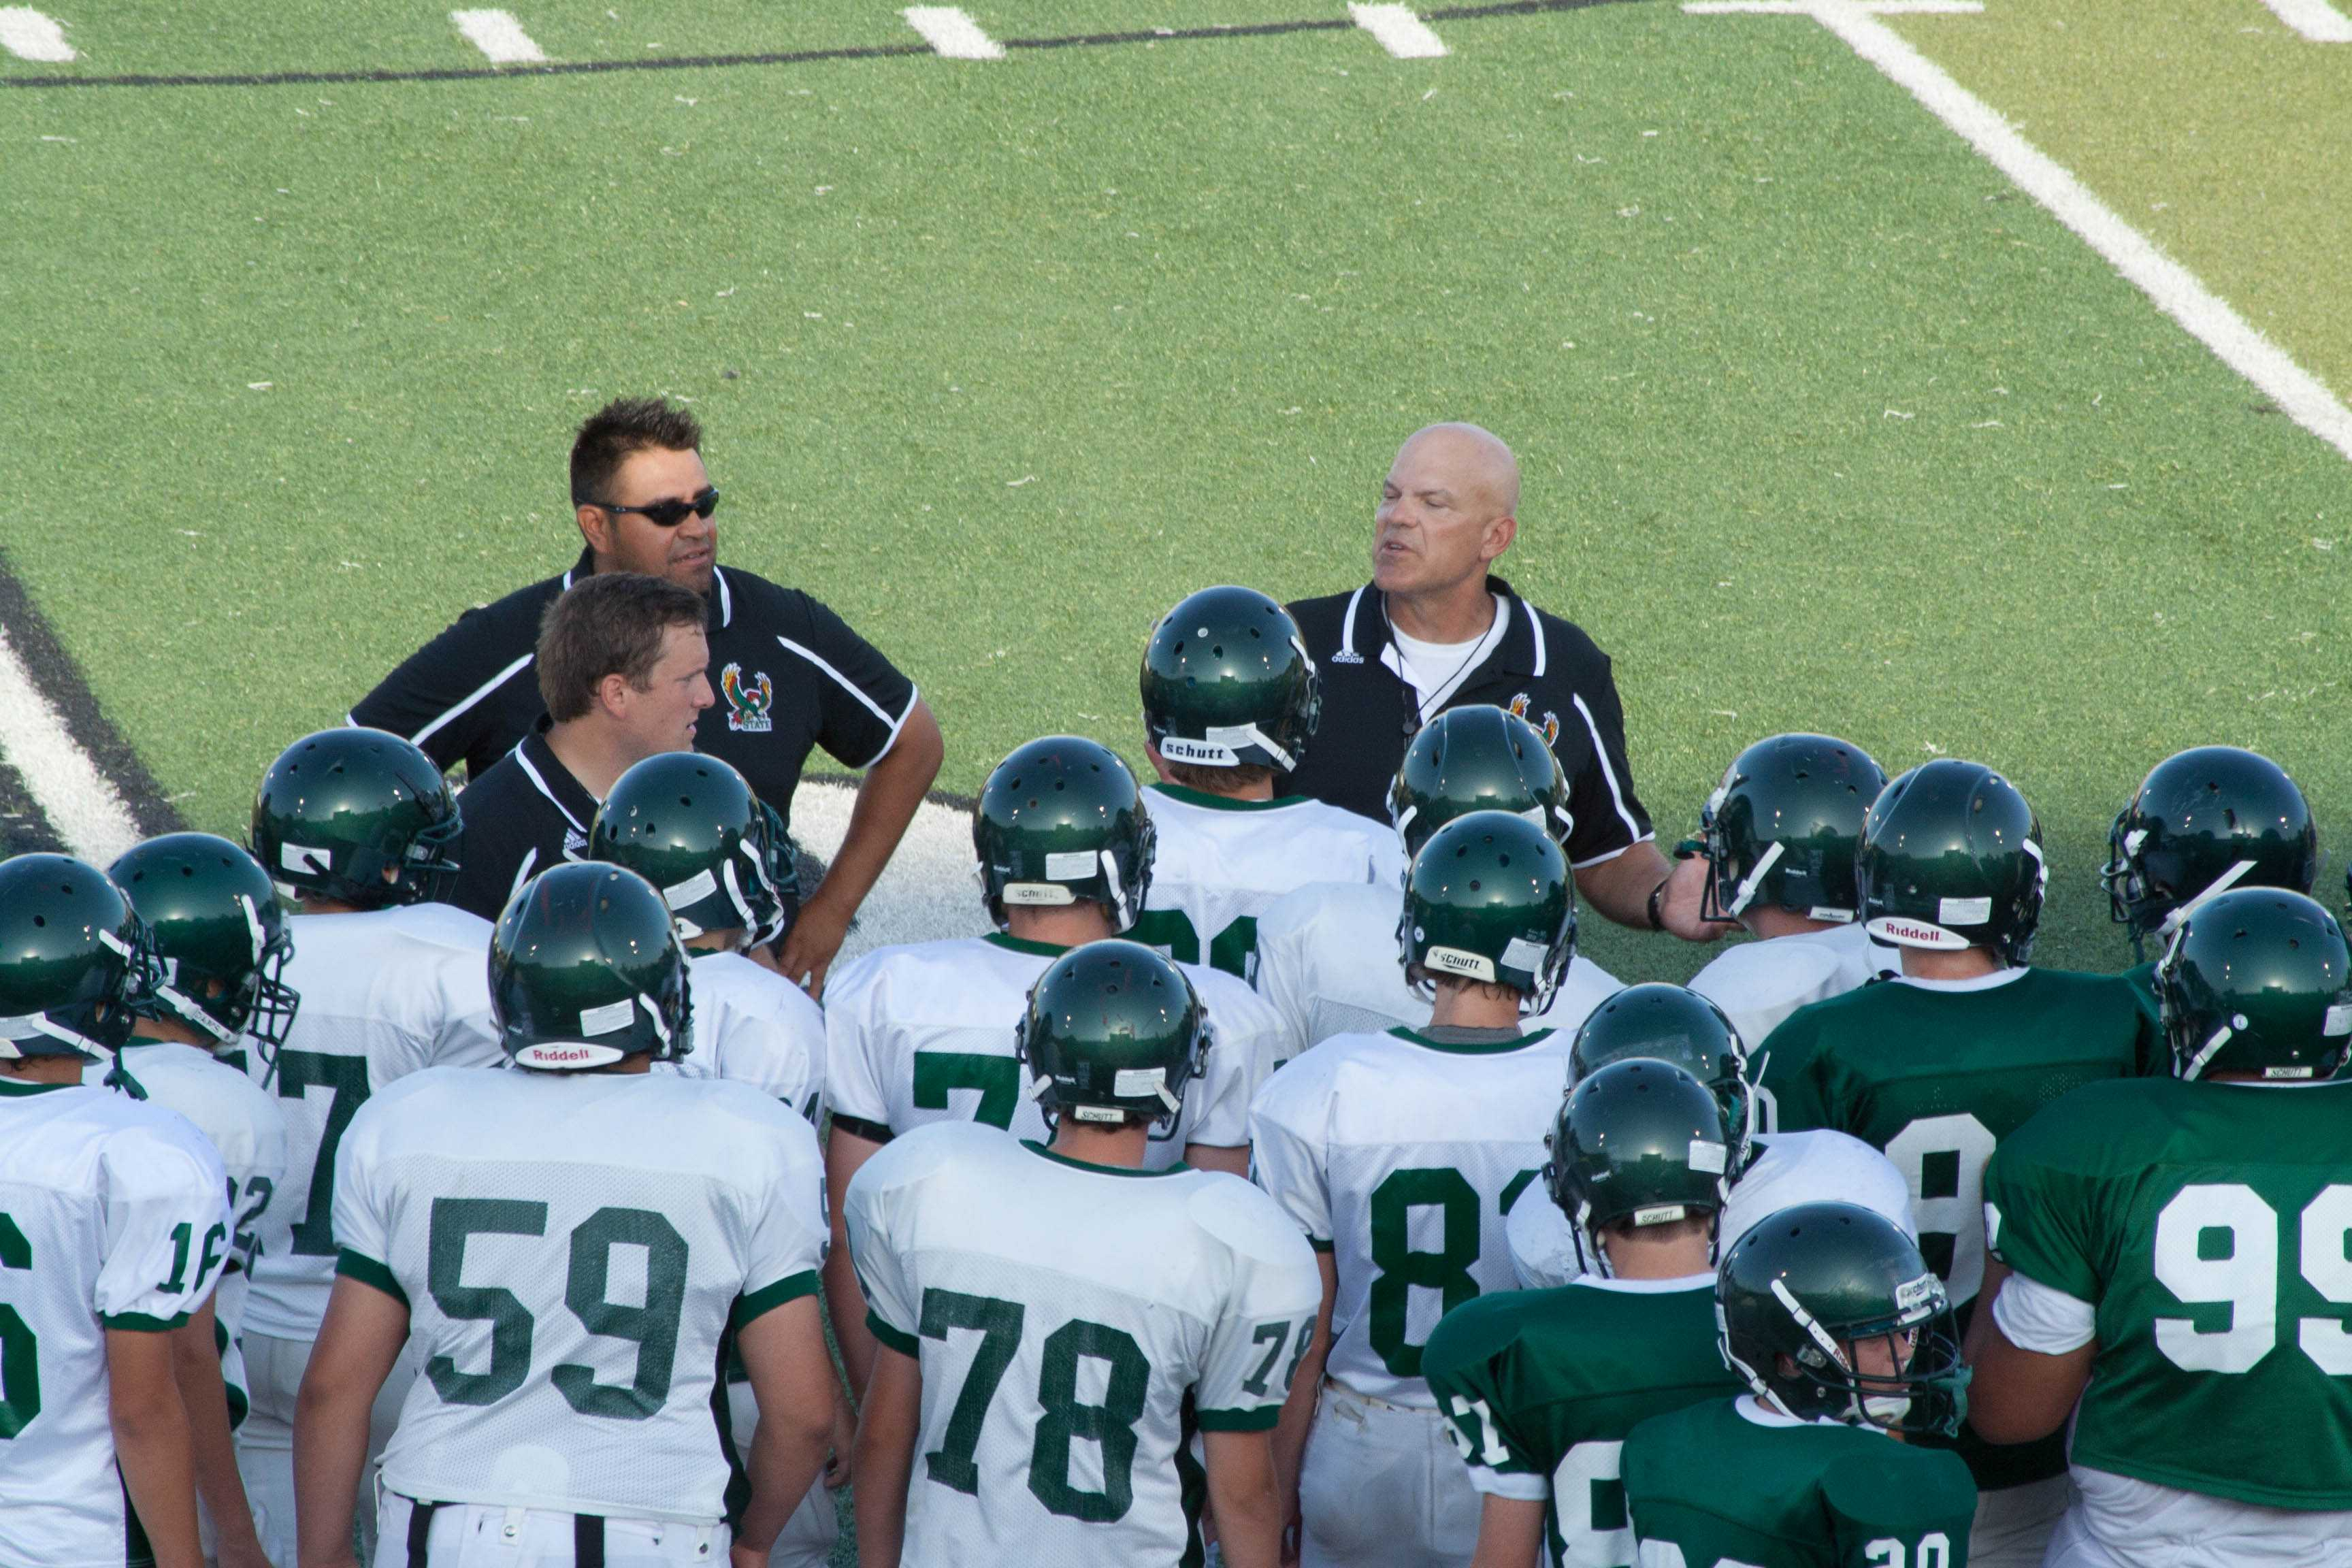 The+football+coaches+give+the+team+a+pep+talk+during+a+break+in+the+scrimmage.+